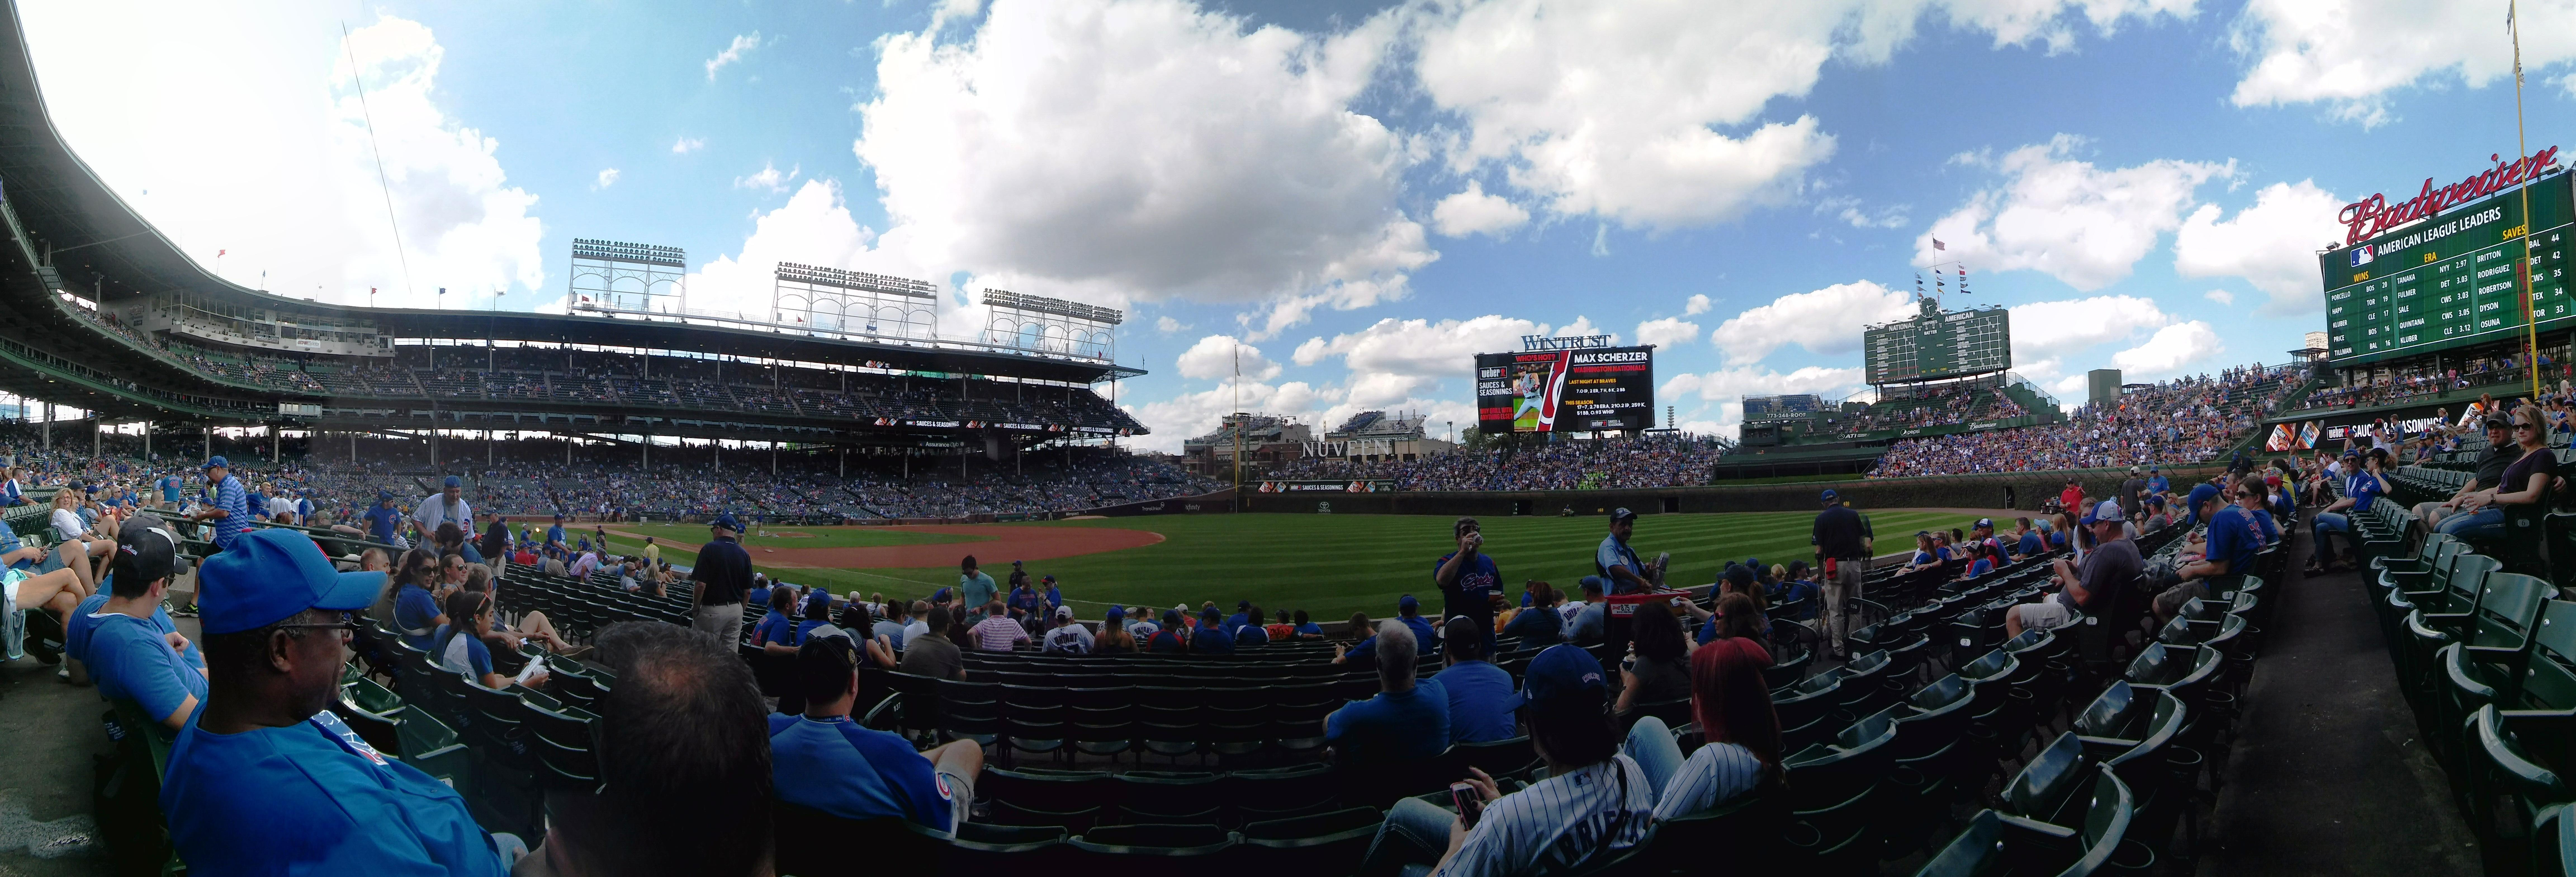 Wrigley Field Section 137 Row 5 Seat 4